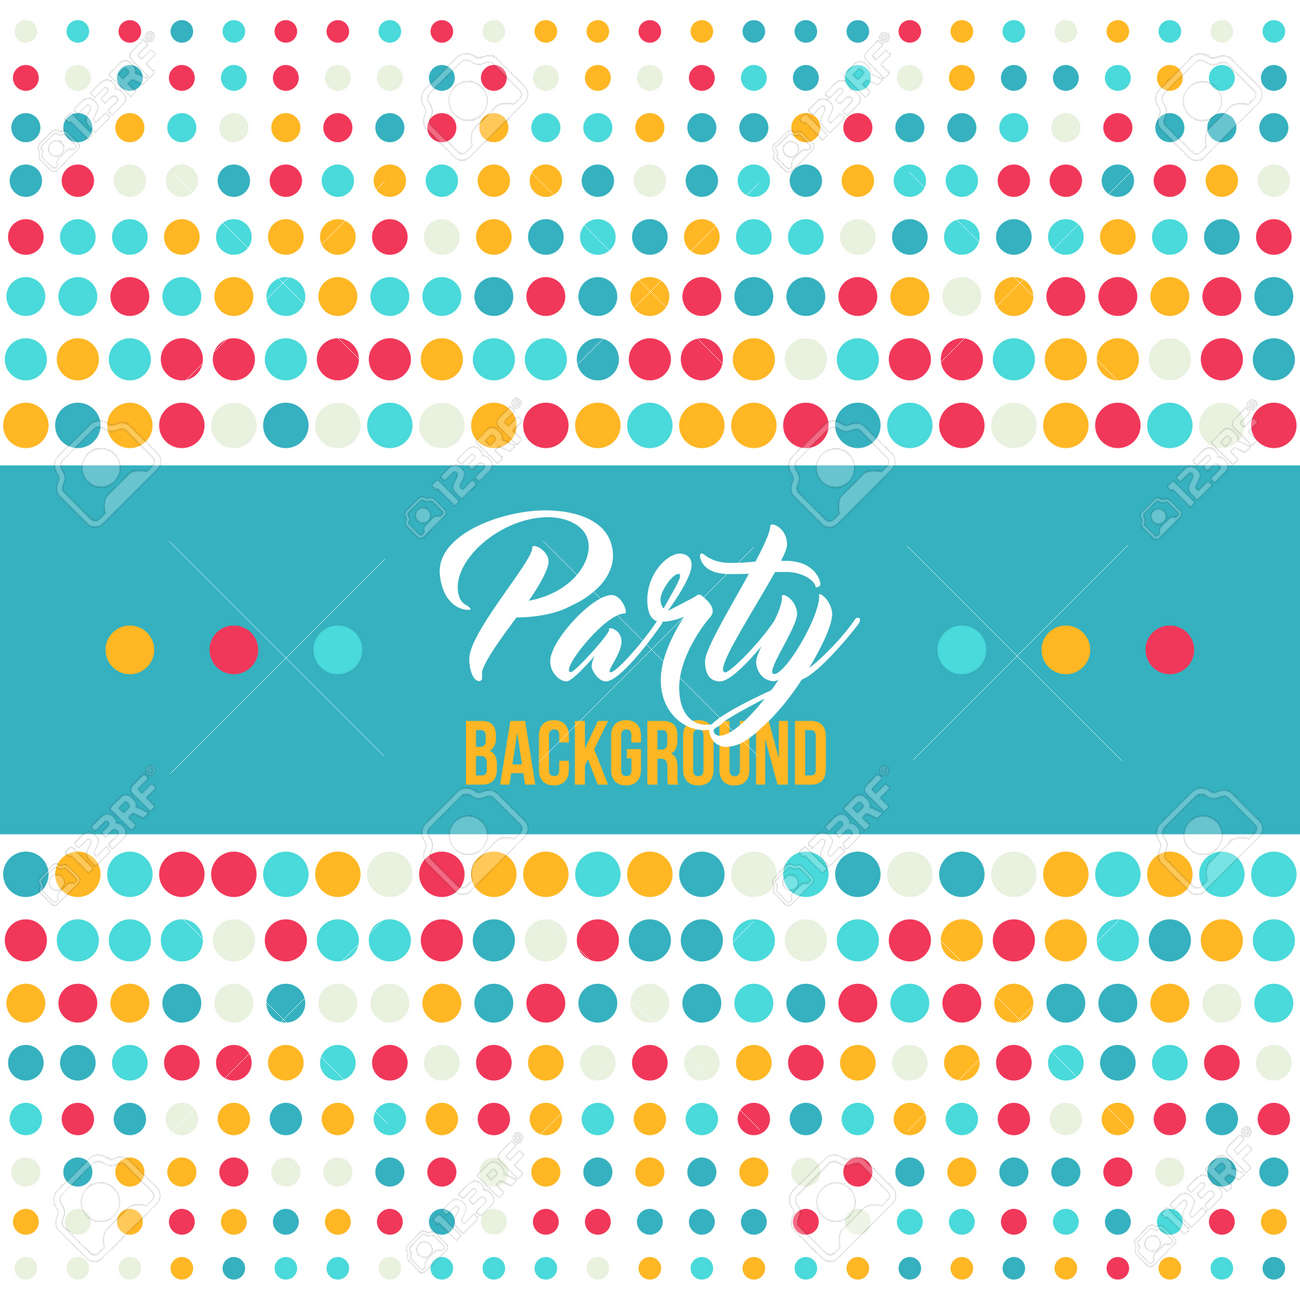 Multicolored Dot Background For Disco Party Poster Or Event Invitation Abstract Colorful Polka